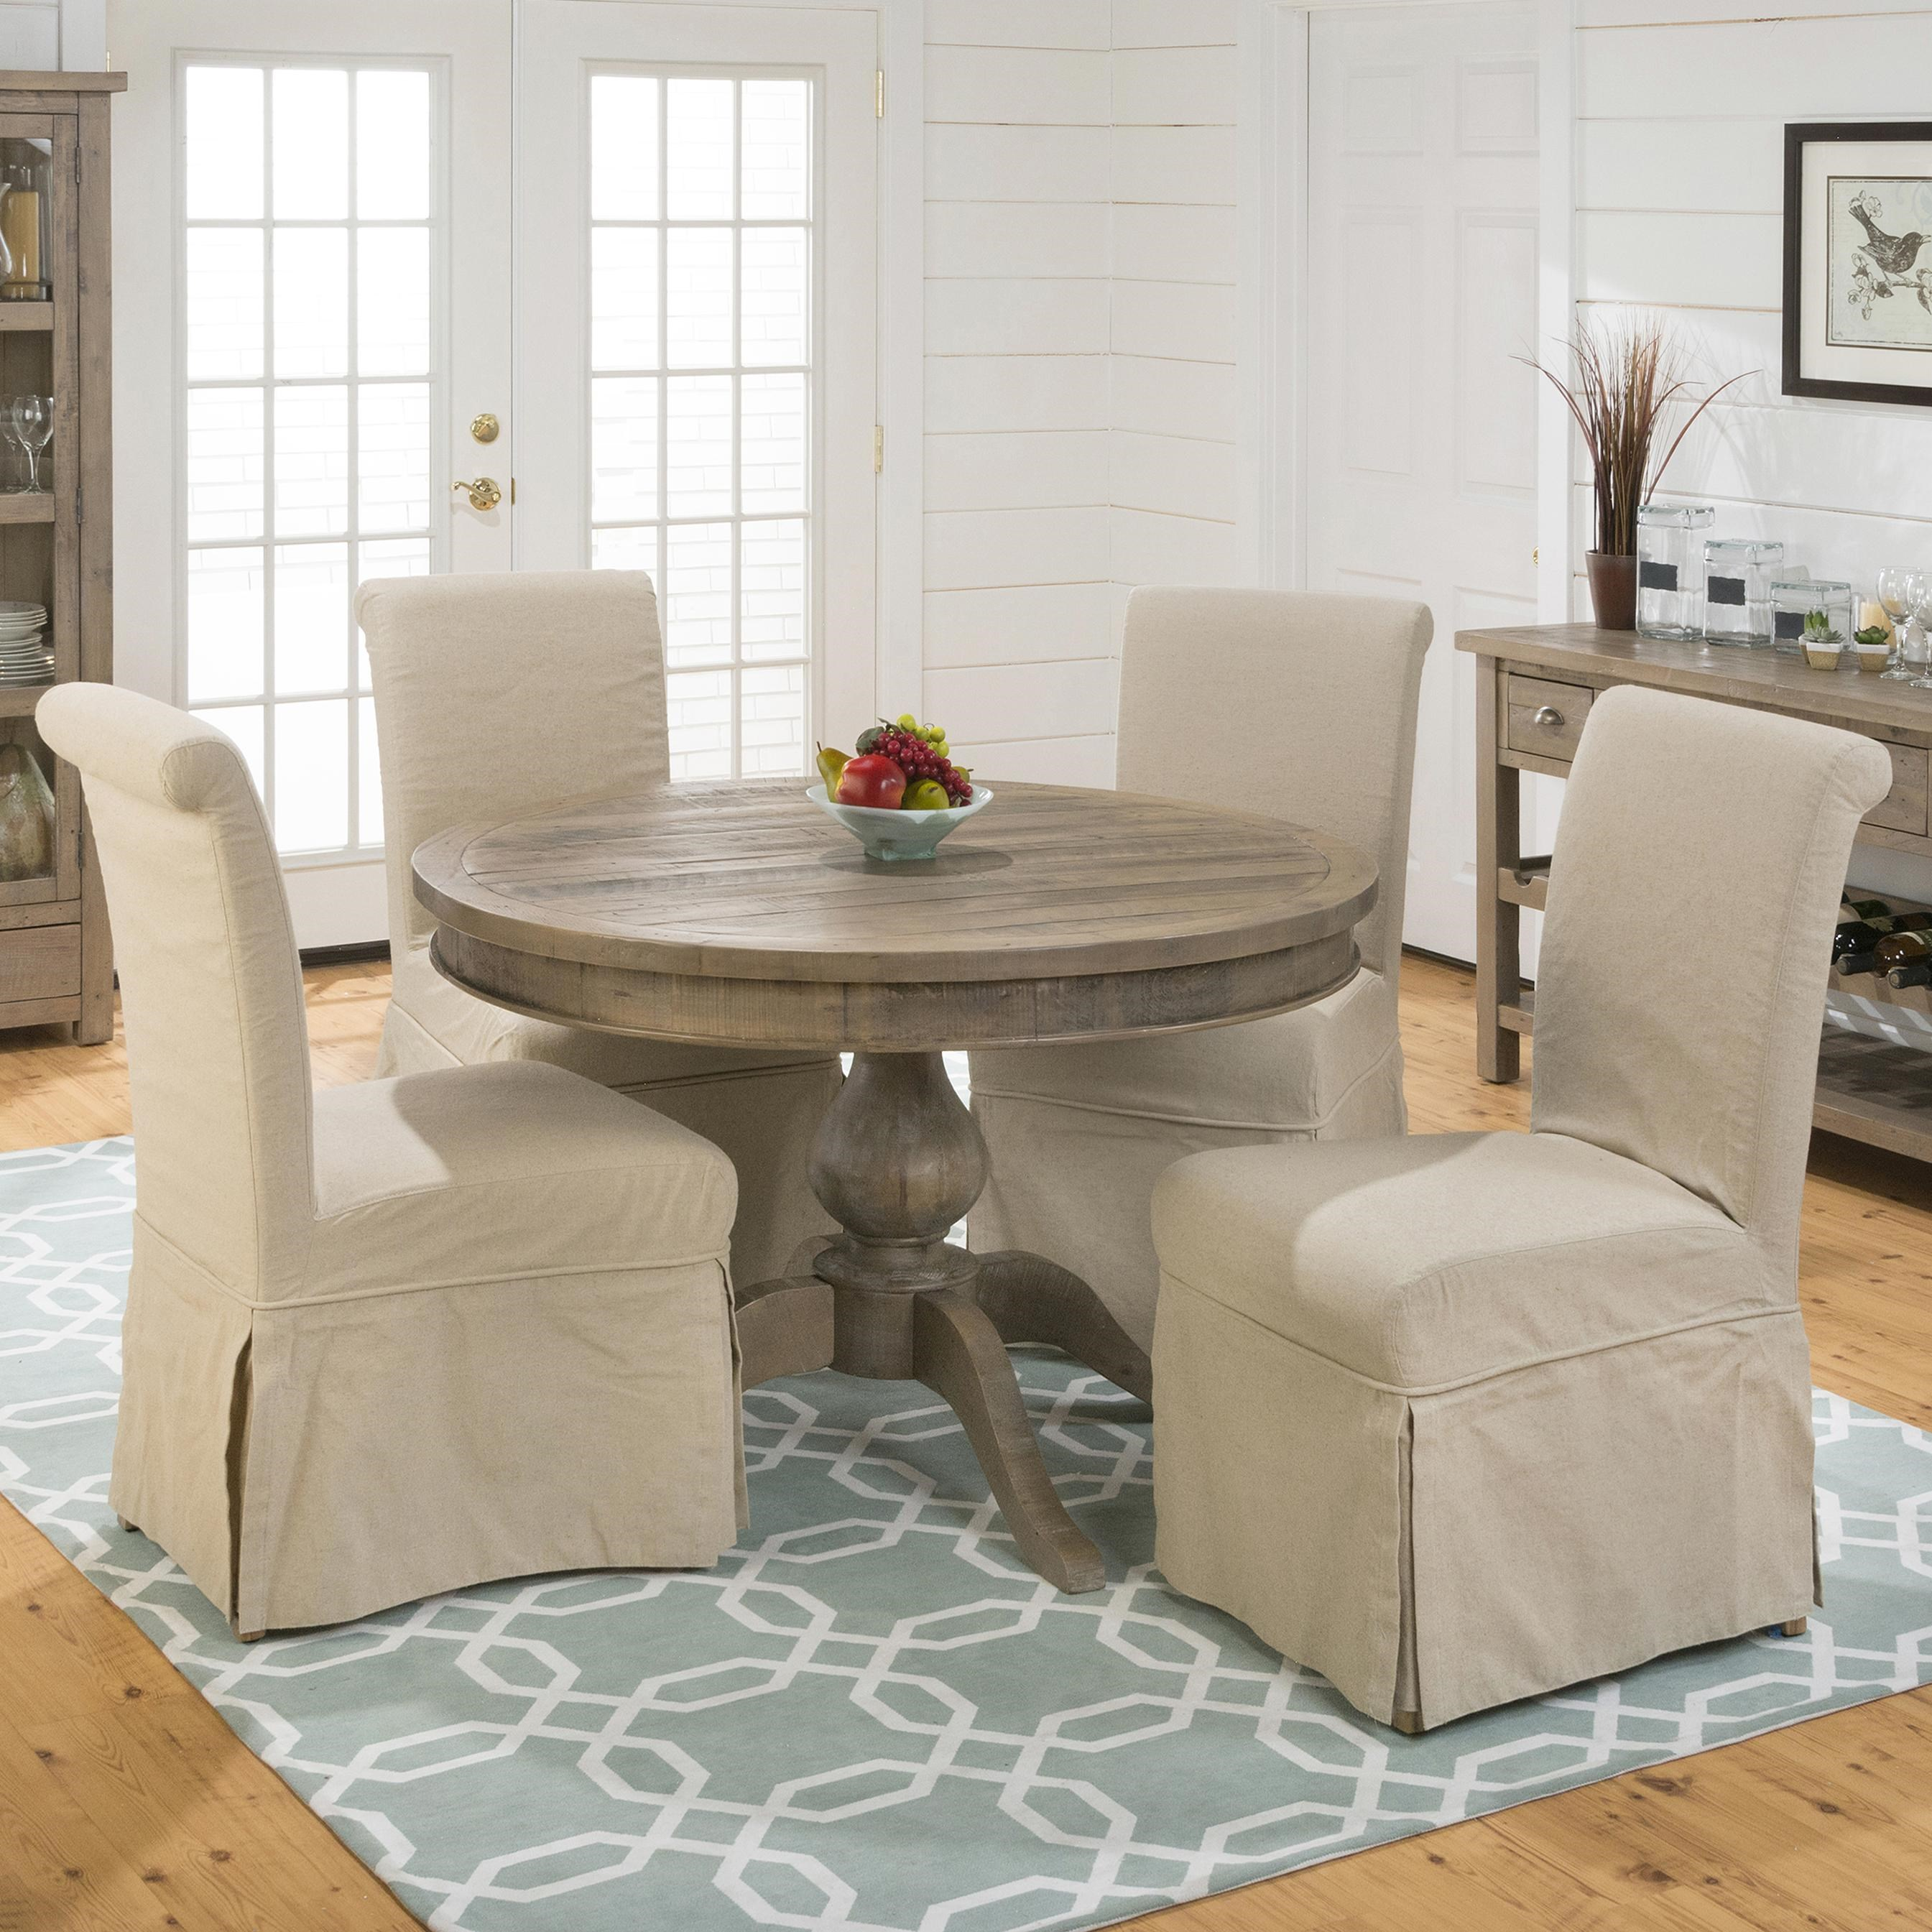 Superbe Jofran Slater Mill Pine Slipcover Chairs And Round Table Set